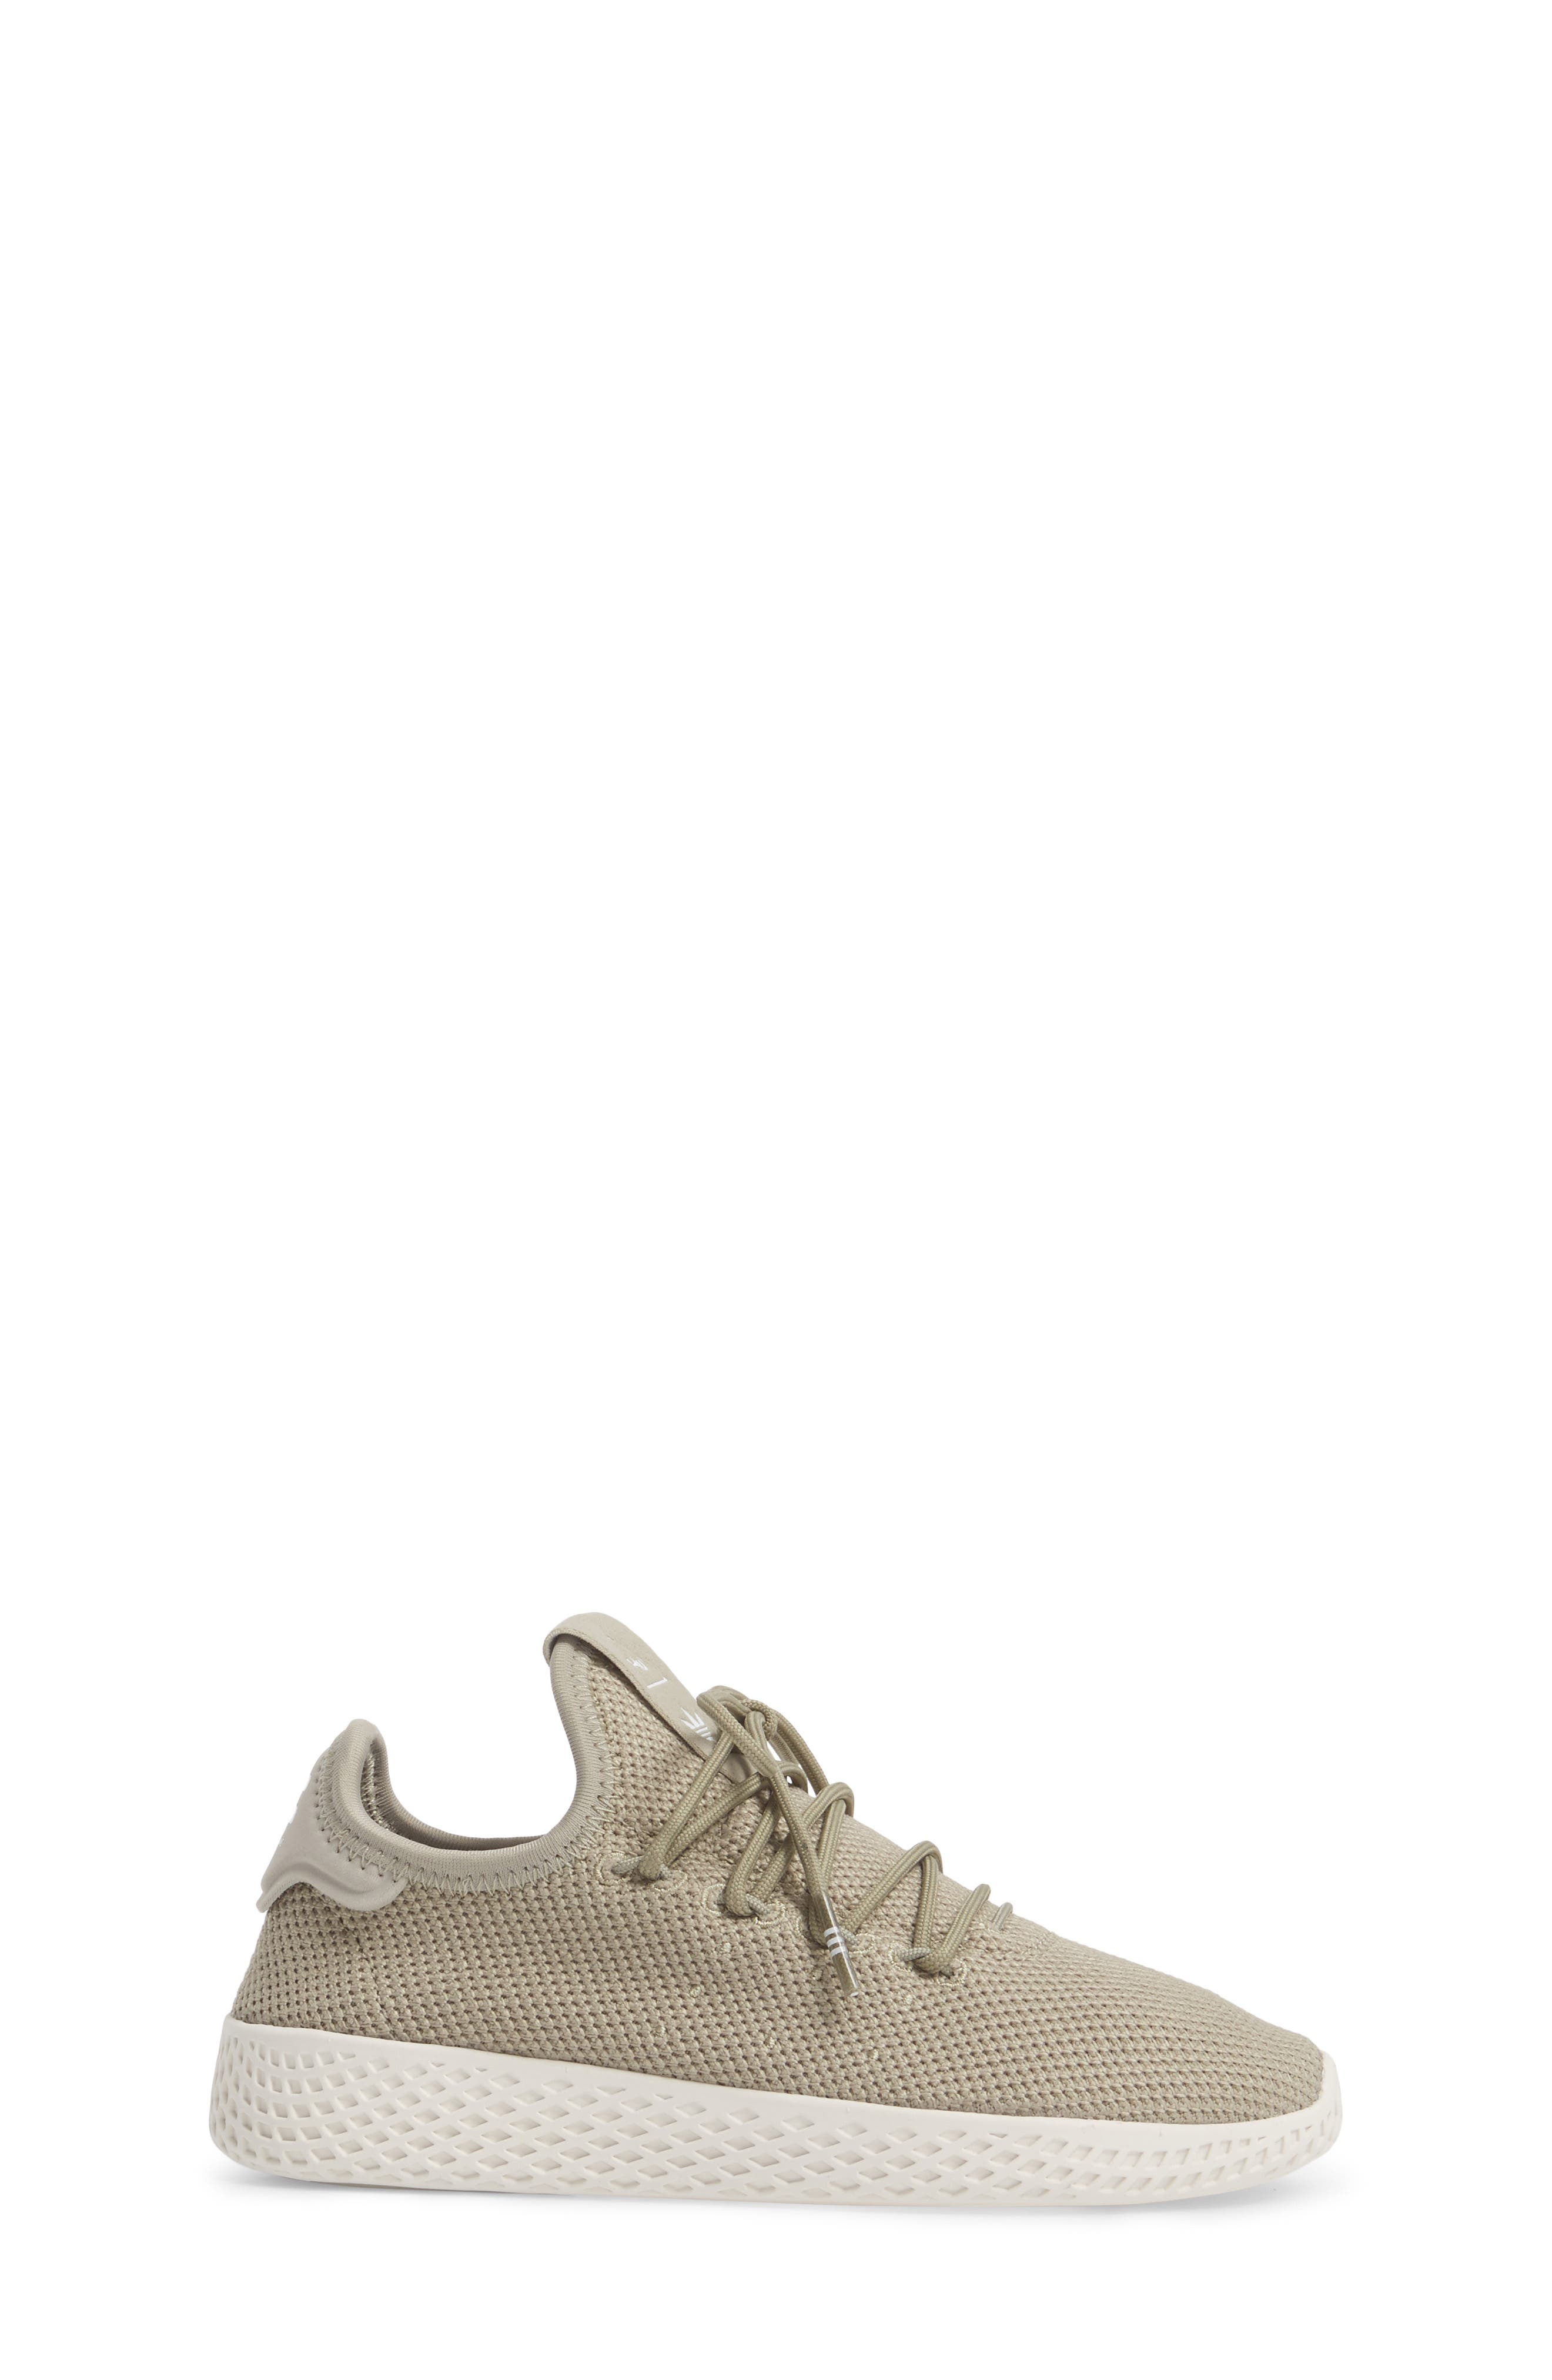 Pharrell Williams Tennis Hu Sock Sneaker,                             Alternate thumbnail 3, color,                             Tech Beige/ Chalk White